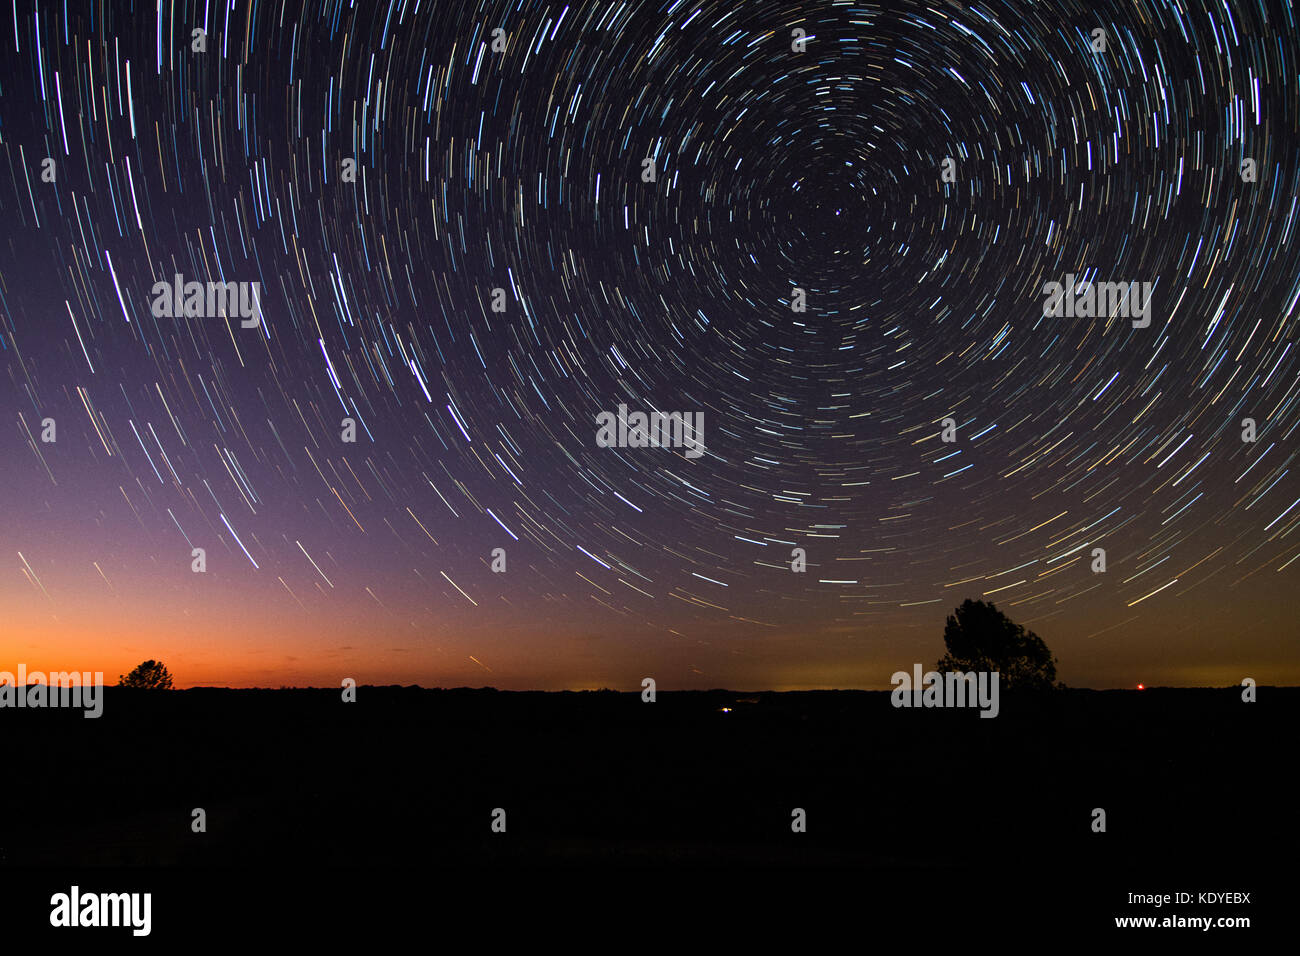 Star trails illustrate the rotation of the Earth. - Stock Image